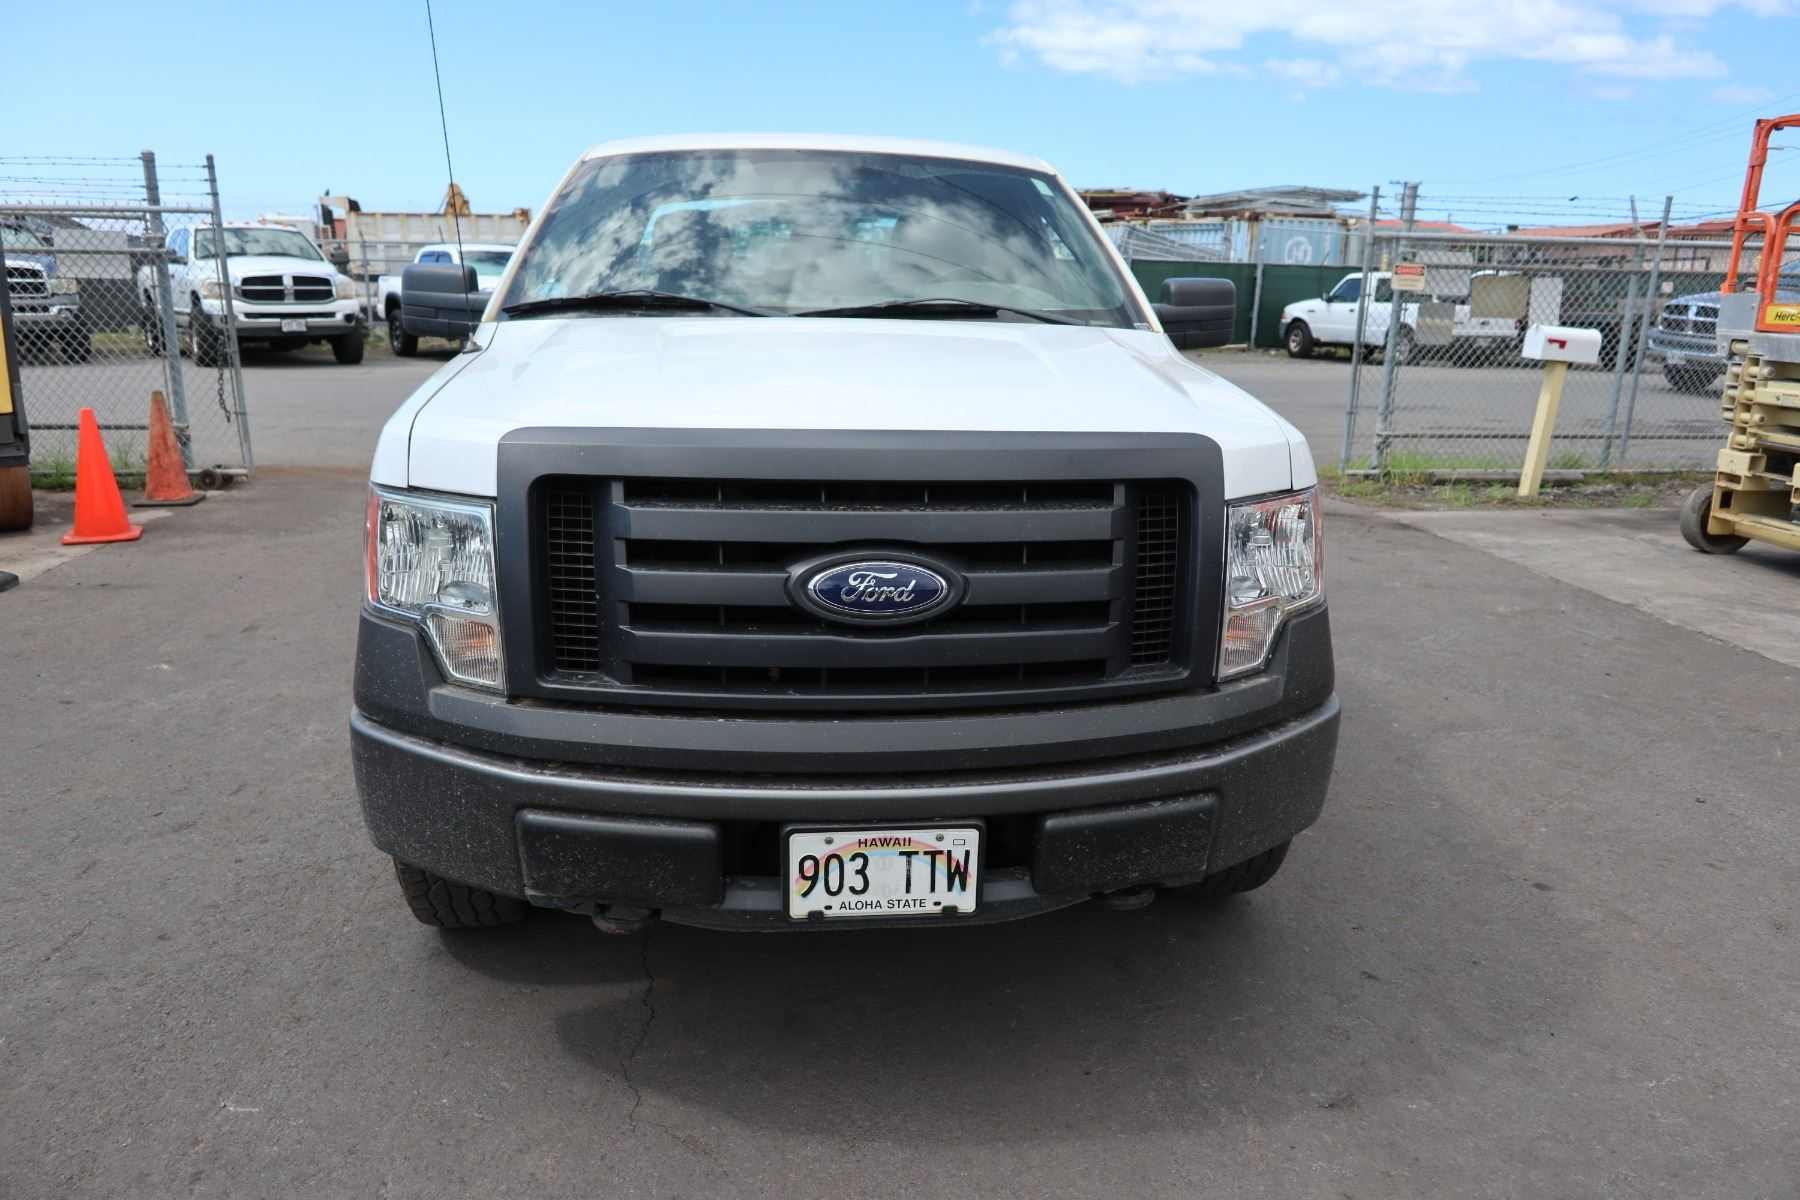 small resolution of  image 2 2012 ford f 150 truck 4x4 crew cab 69 332 miles 903